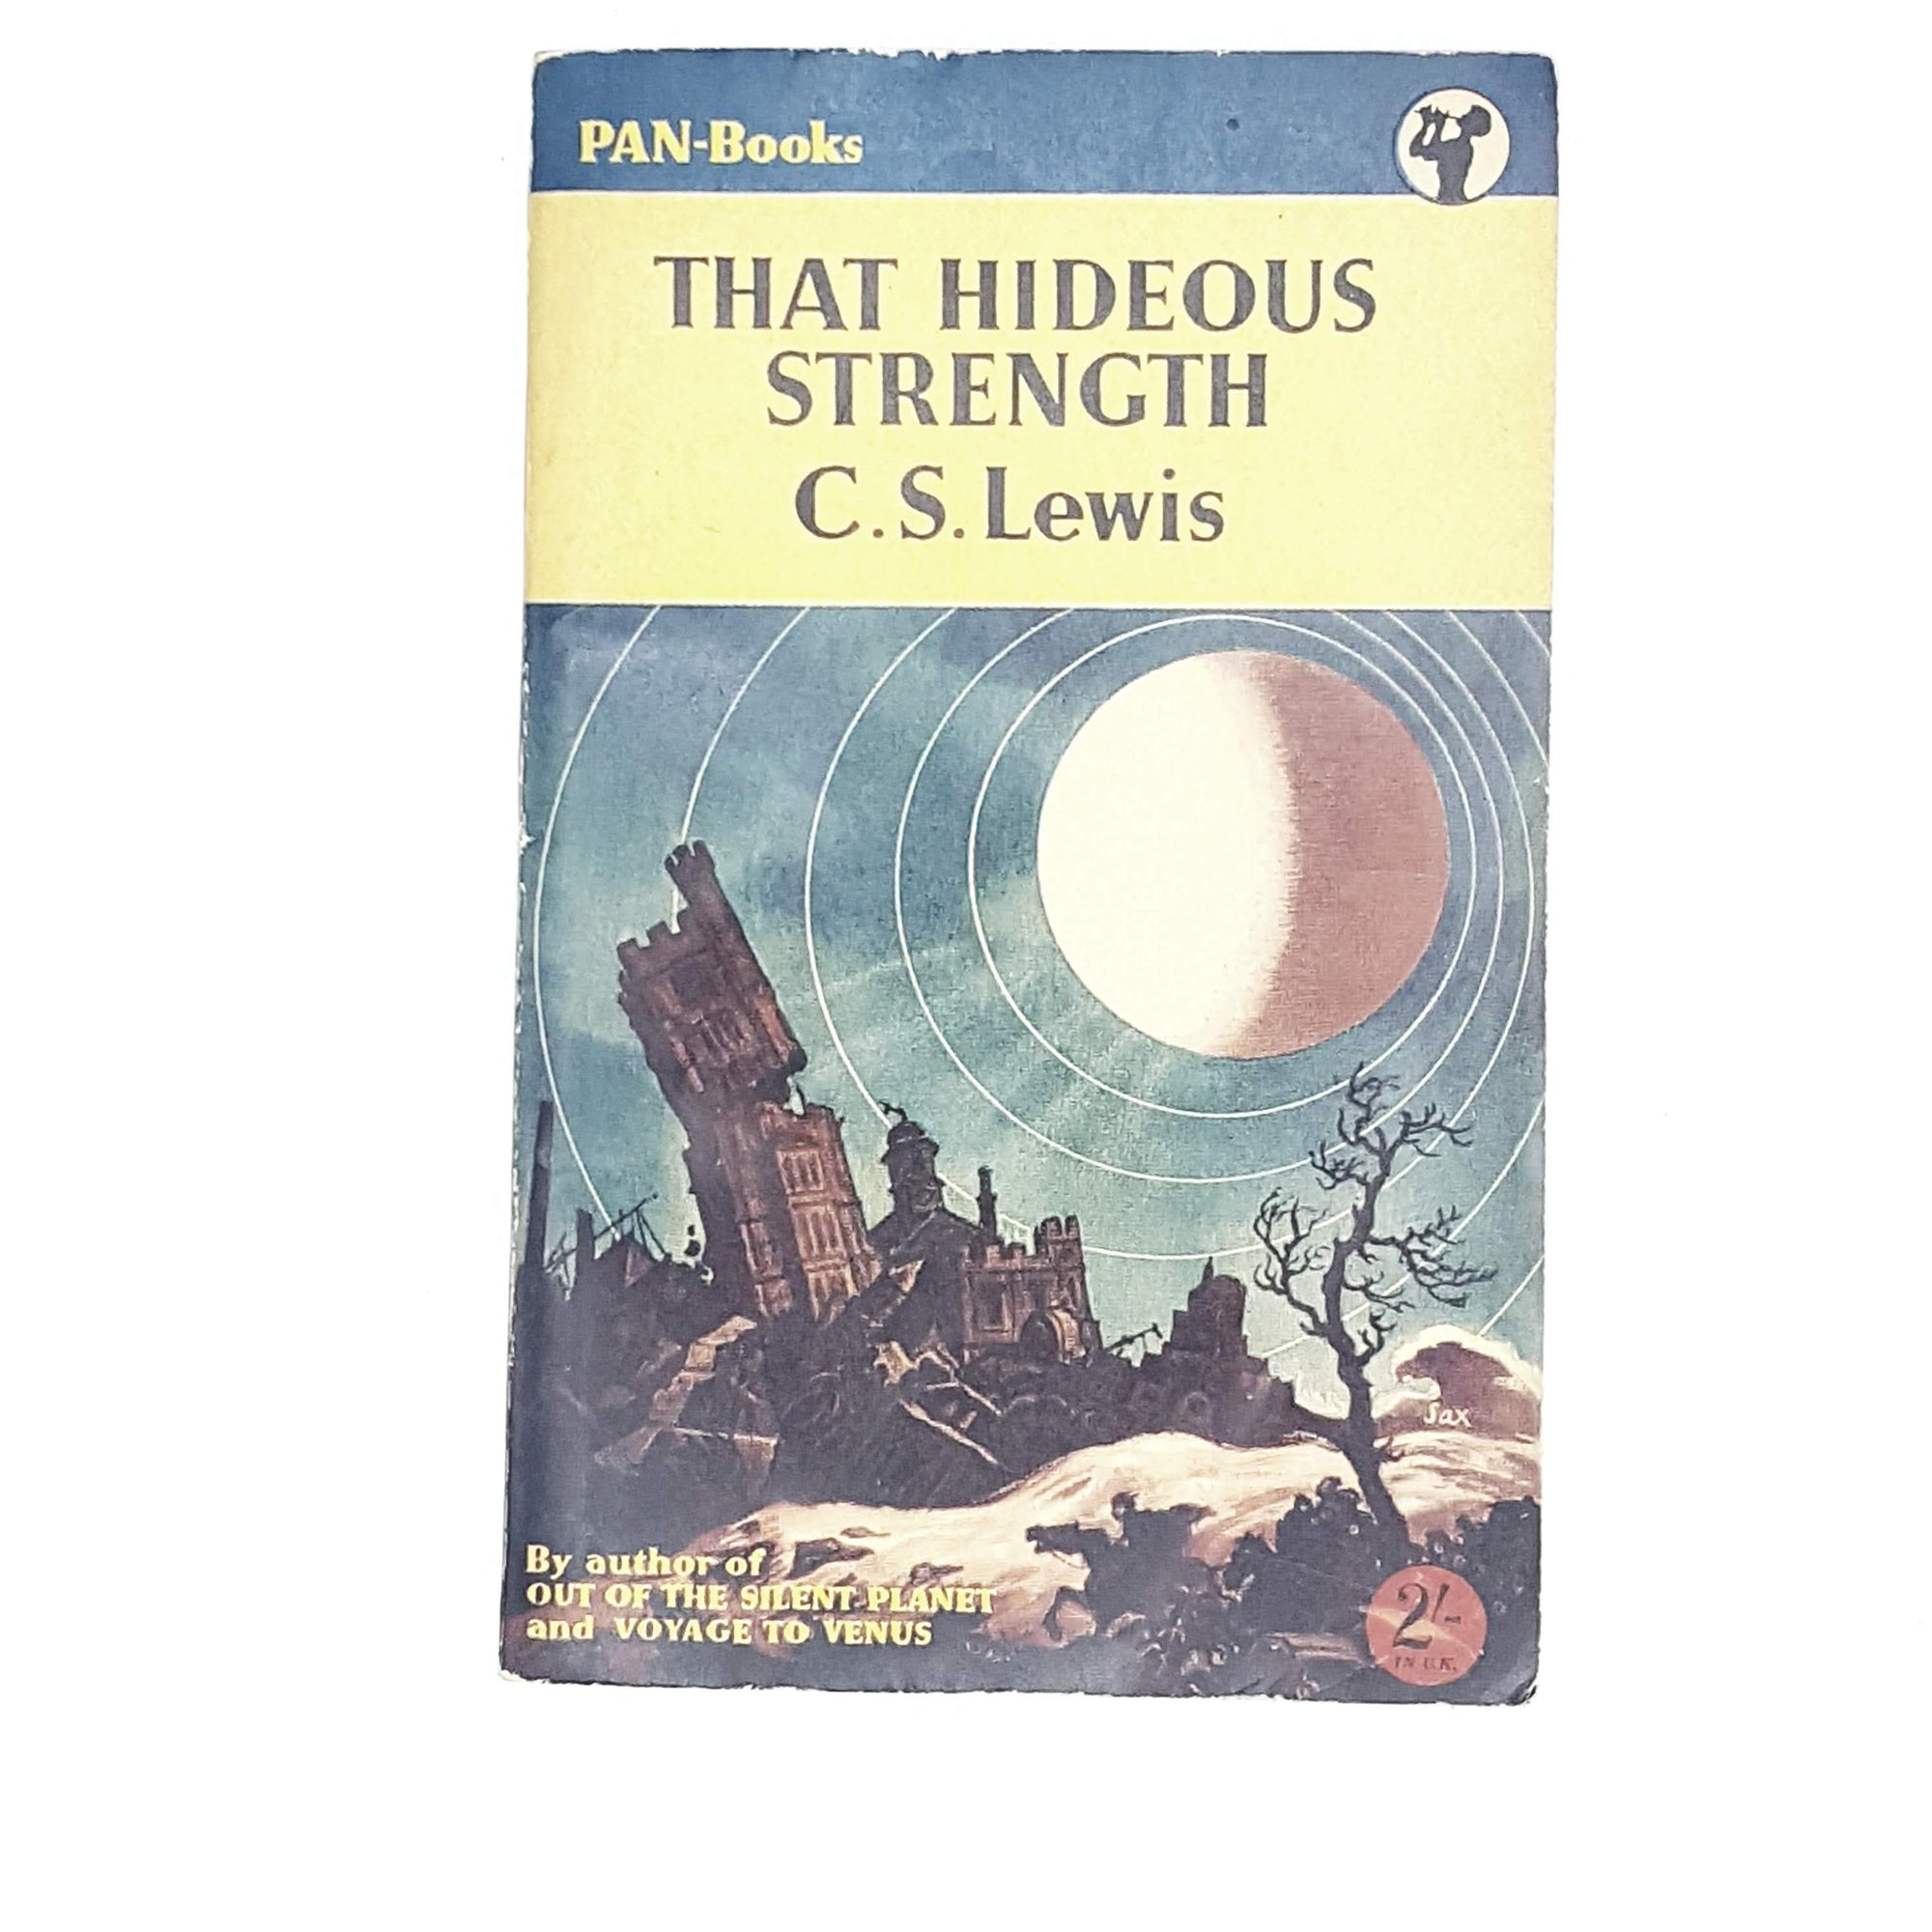 C. S. Lewis's That Hideous Strength 1956